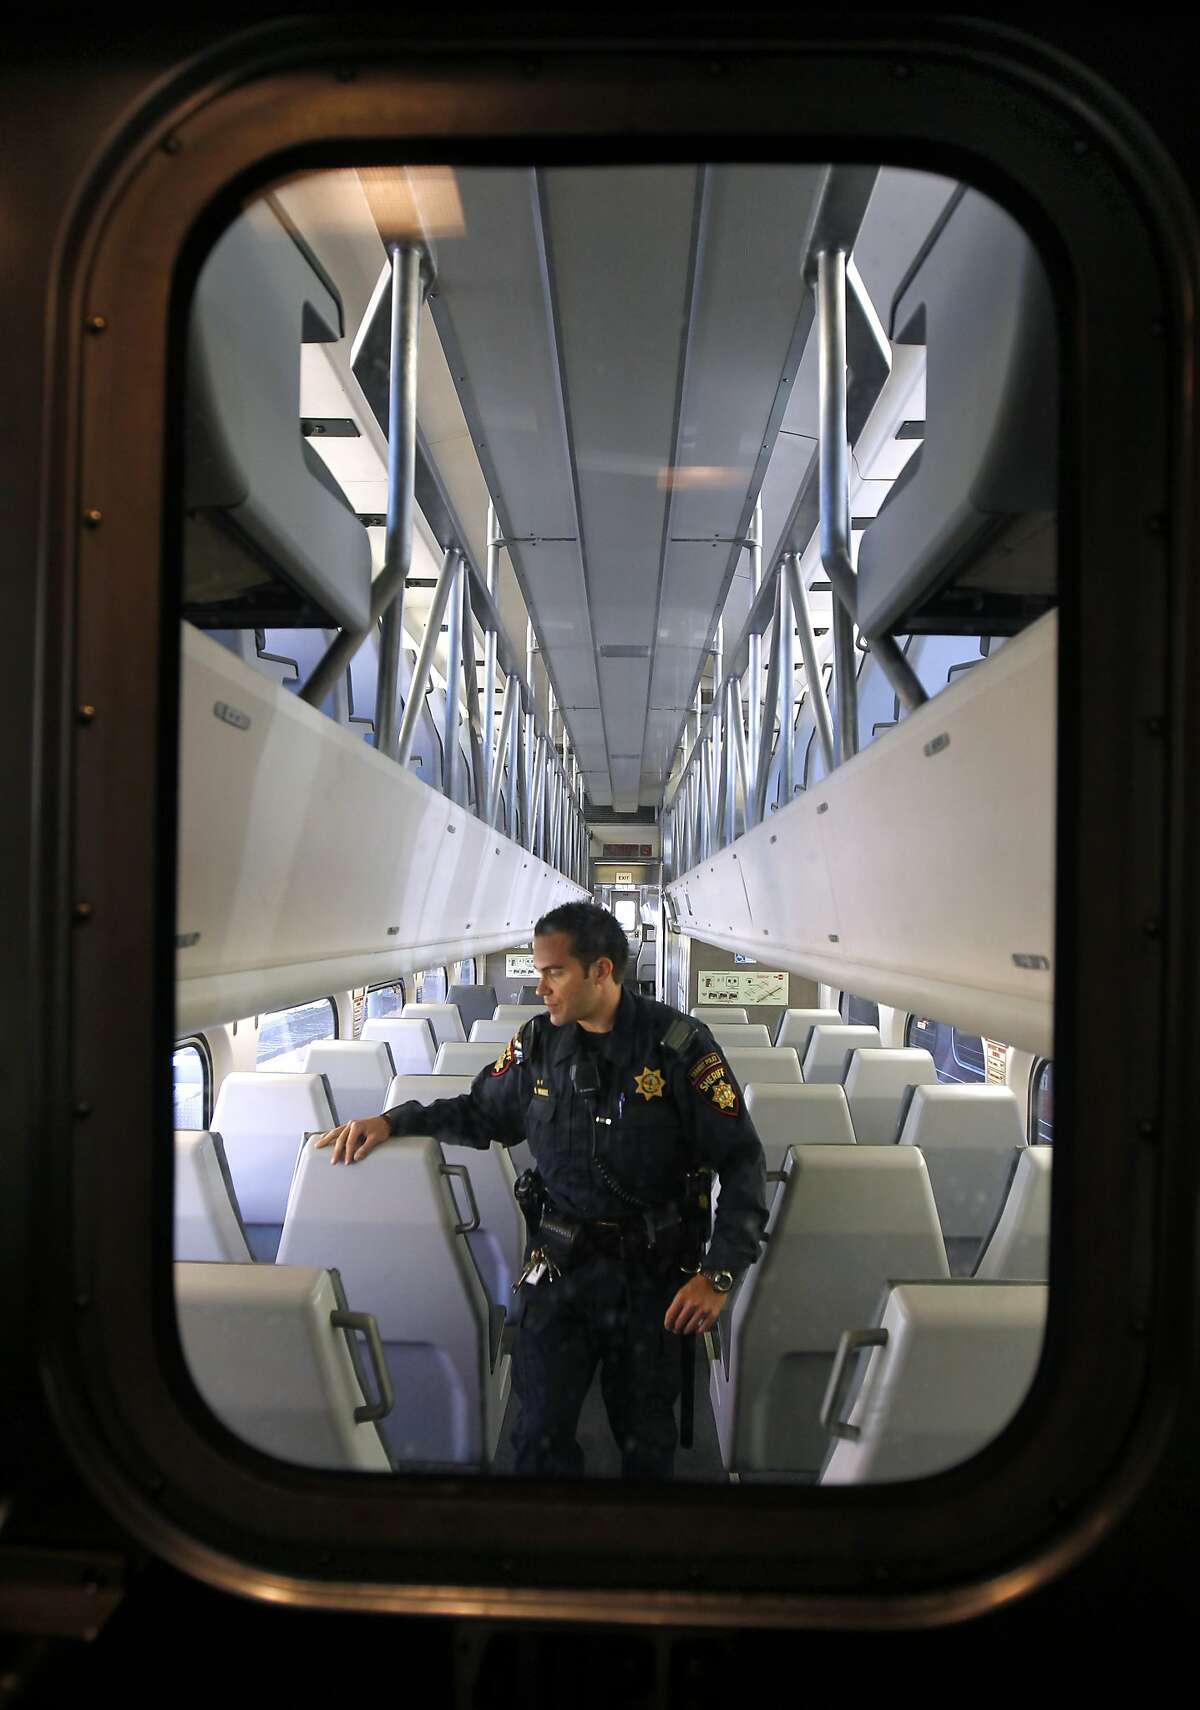 San Mateo County Sheriff's Deputy Brandon Hensel, assigned to the transit patrol detail, walks through an empty train at the Caltrain station in San Francisco, Calif. before it heads southbound on Wednesday, Aug. 8, 2012.